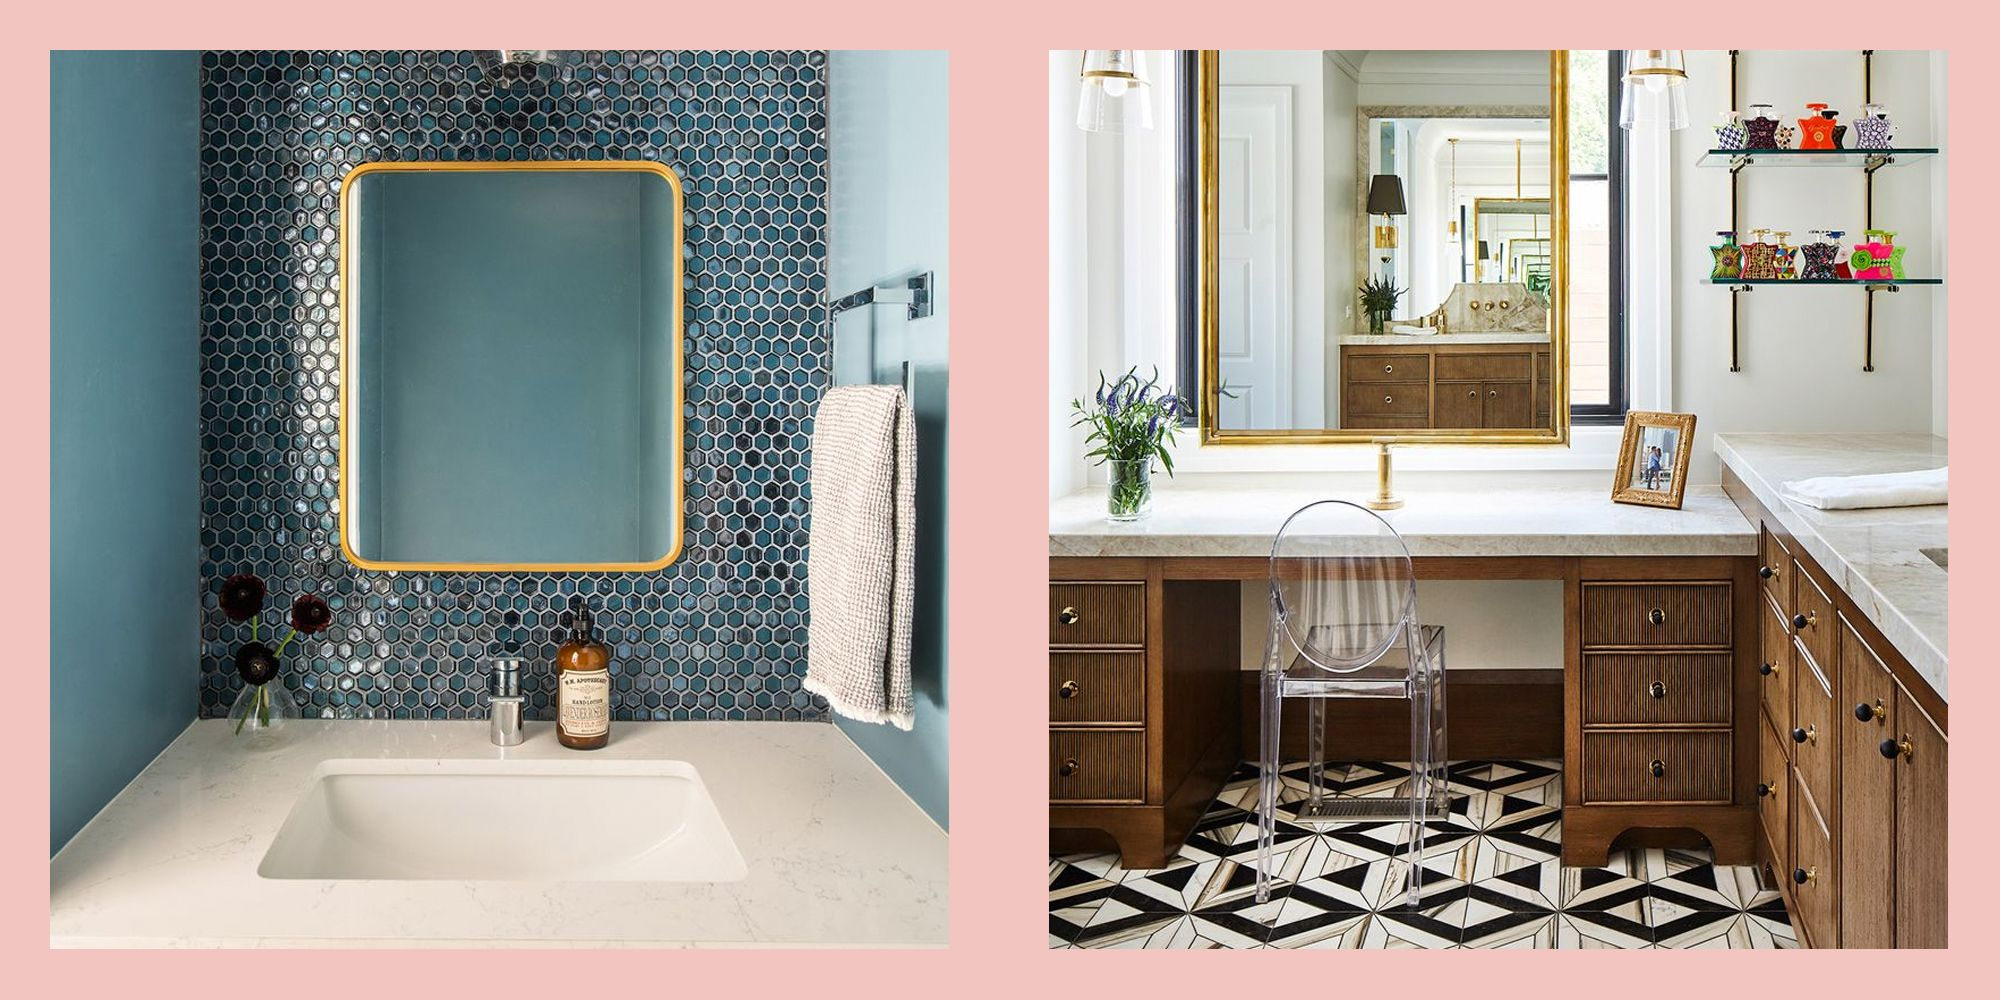 Top Bathroom Trends of 2020 - What Bathroom Styles Are In on Small Bathroom Ideas 2020 id=12872